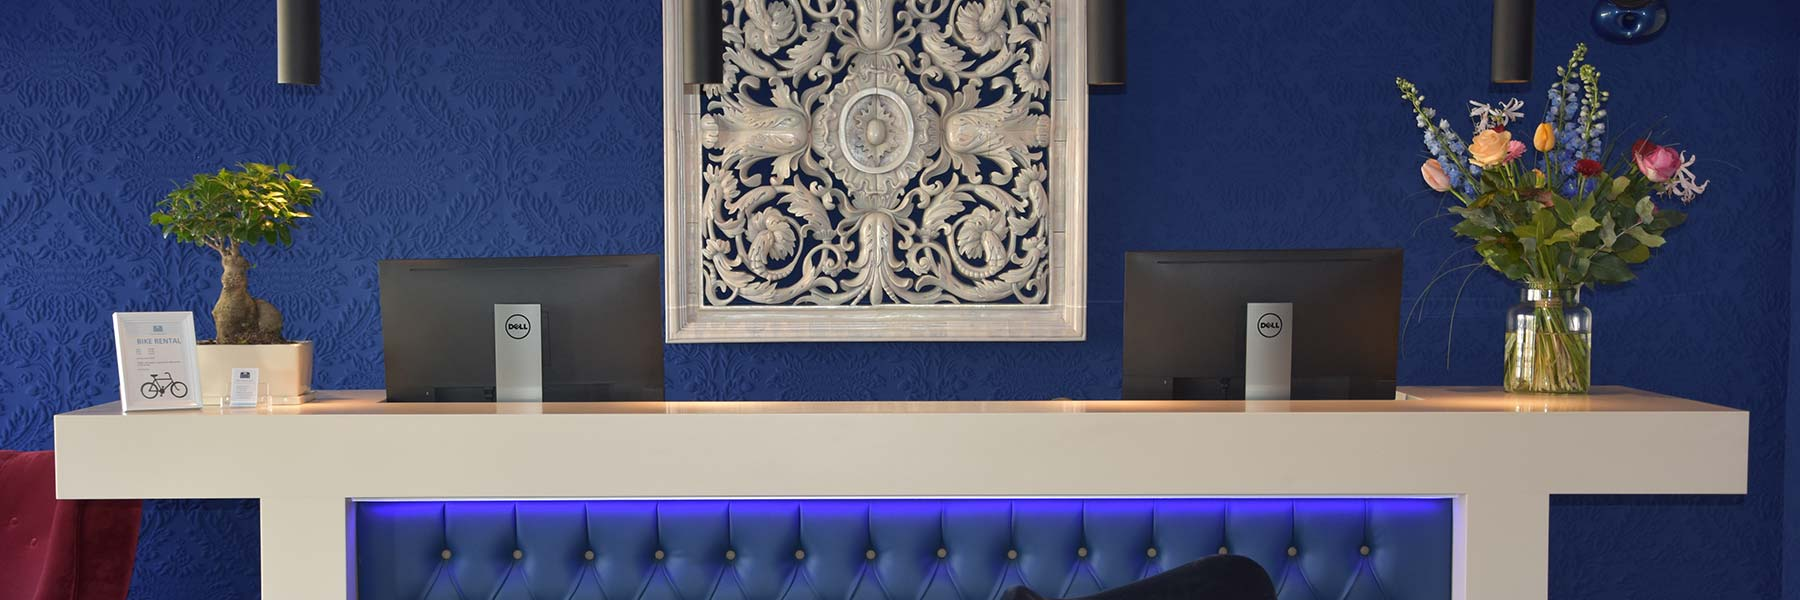 Faciliteiten in Blue Mansion Hotel Aalsmeer